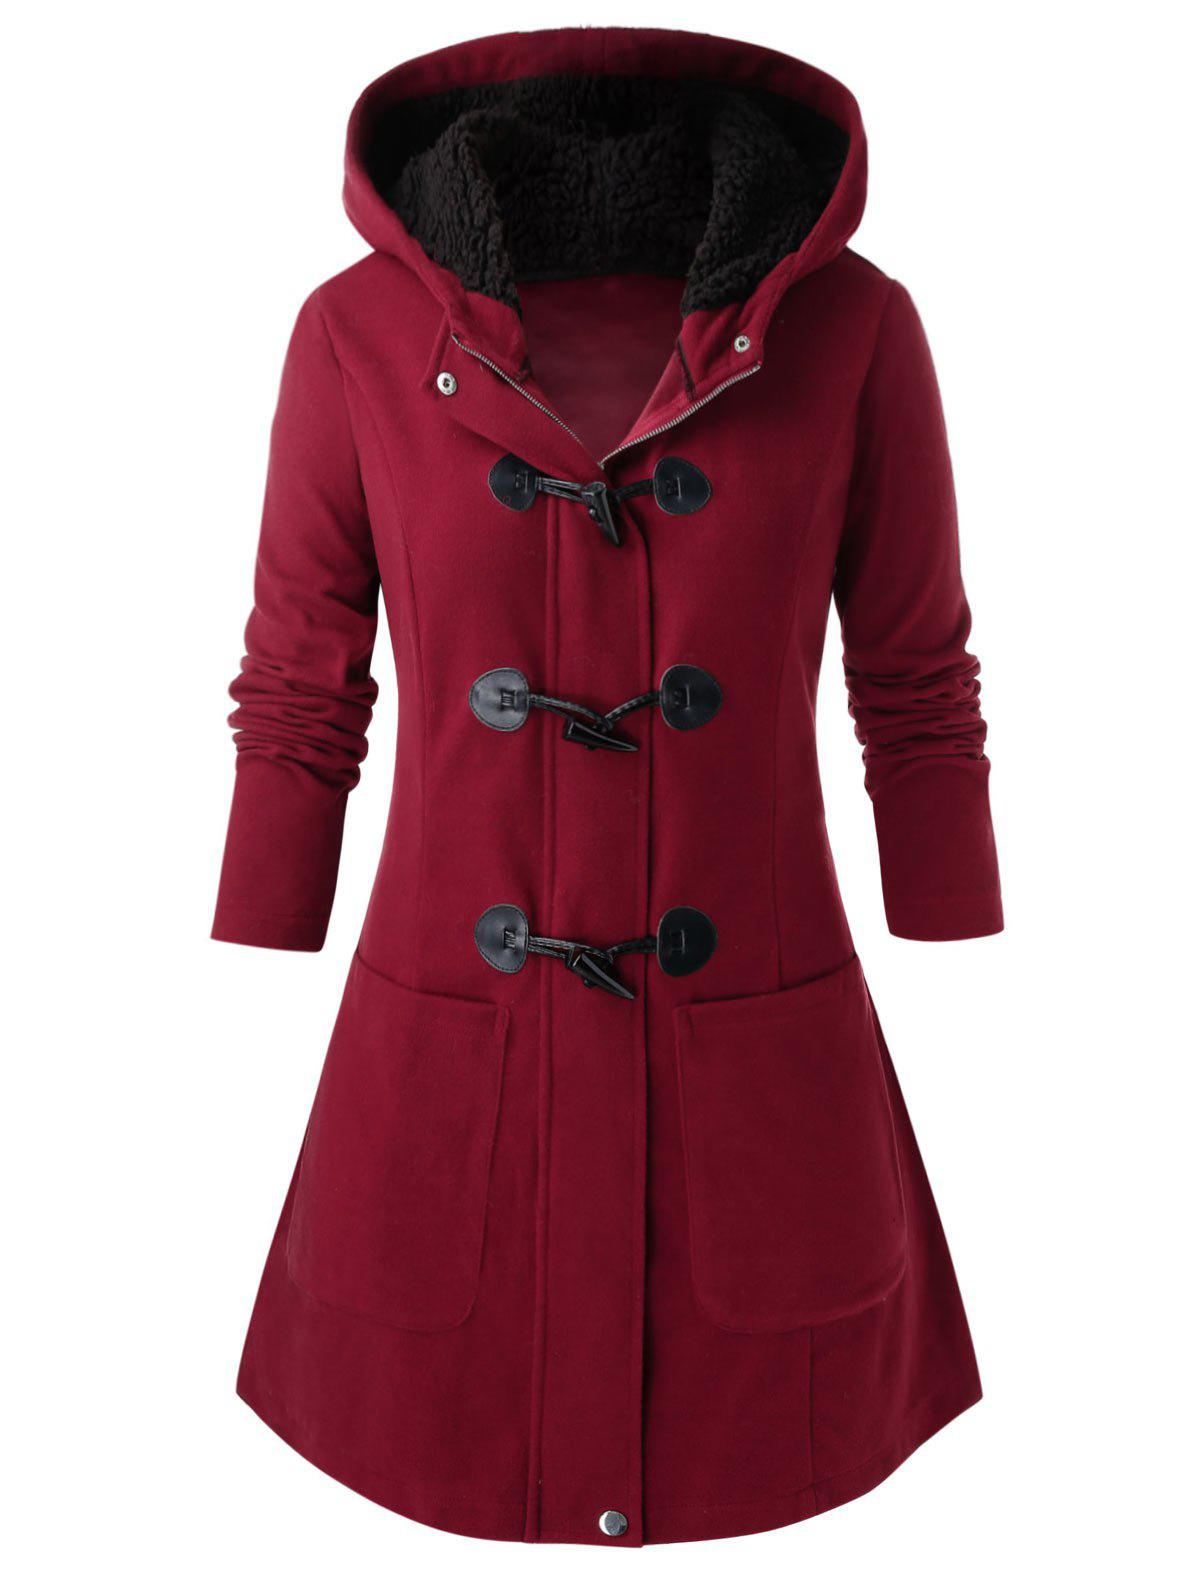 Plus Size Faux Fur Hooded Horn Button Coat - RED WINE 4X